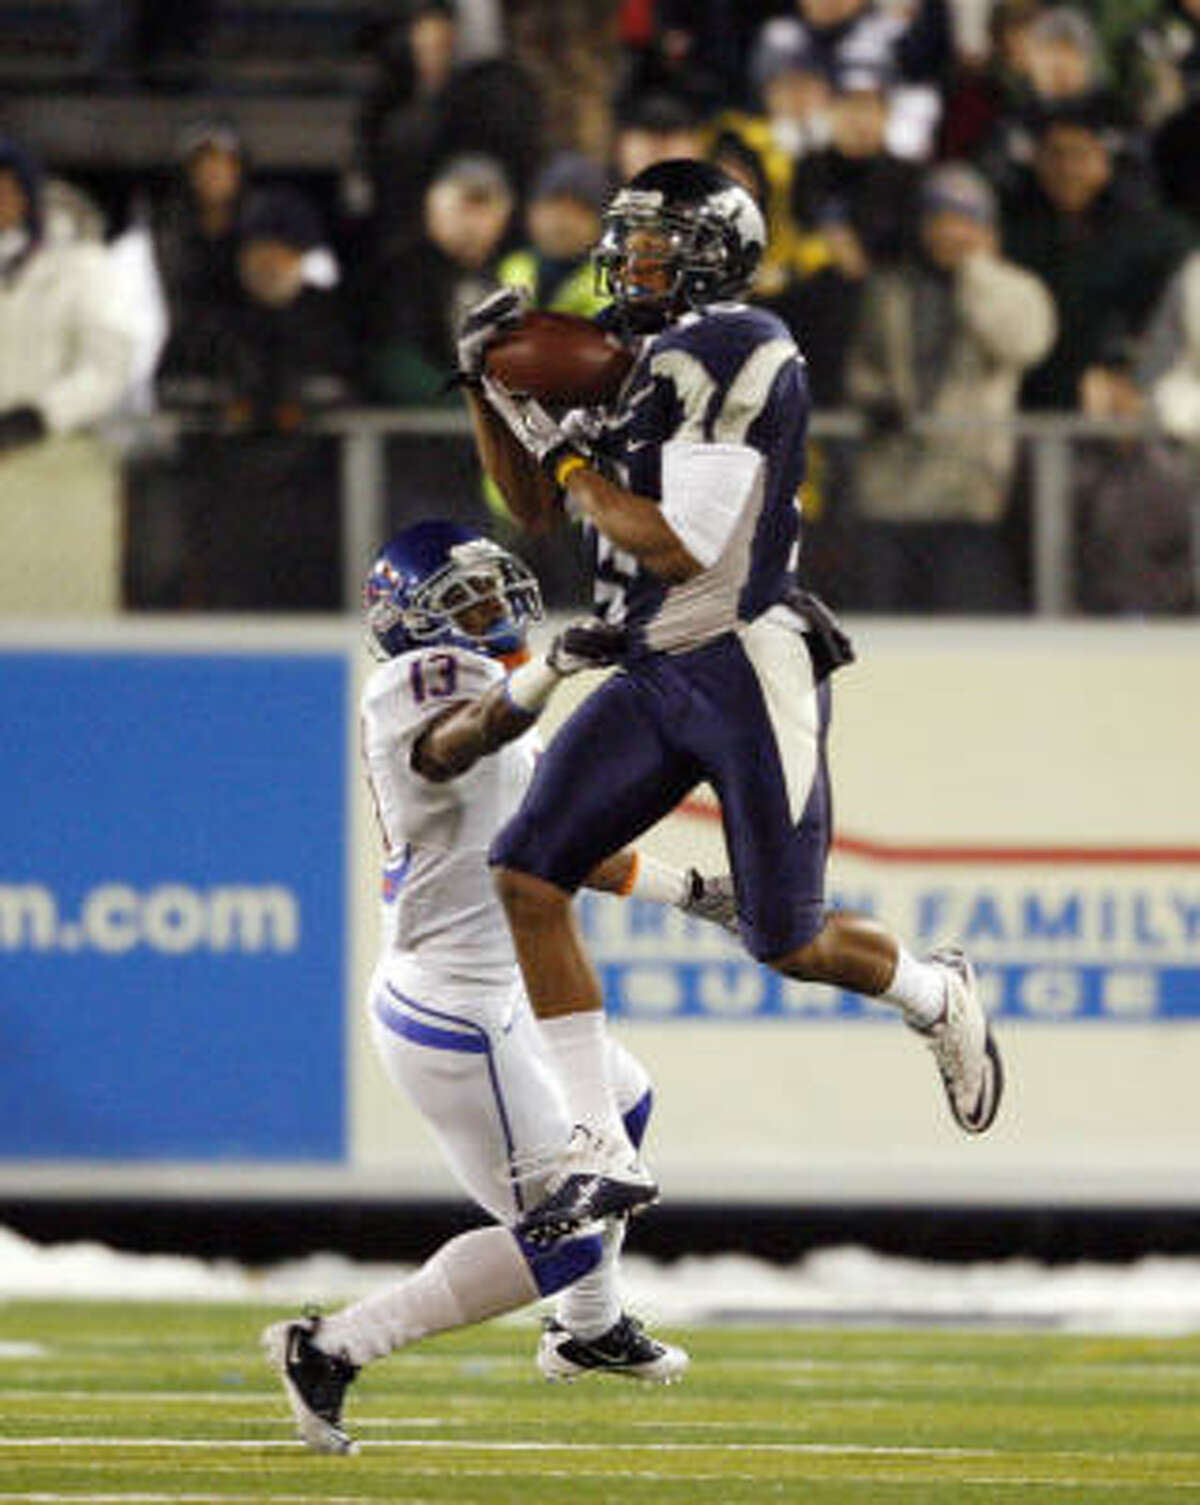 Nevada wide receiver Rishard Matthews catches a pass over Boise State cornerback Brandyn Thompson.